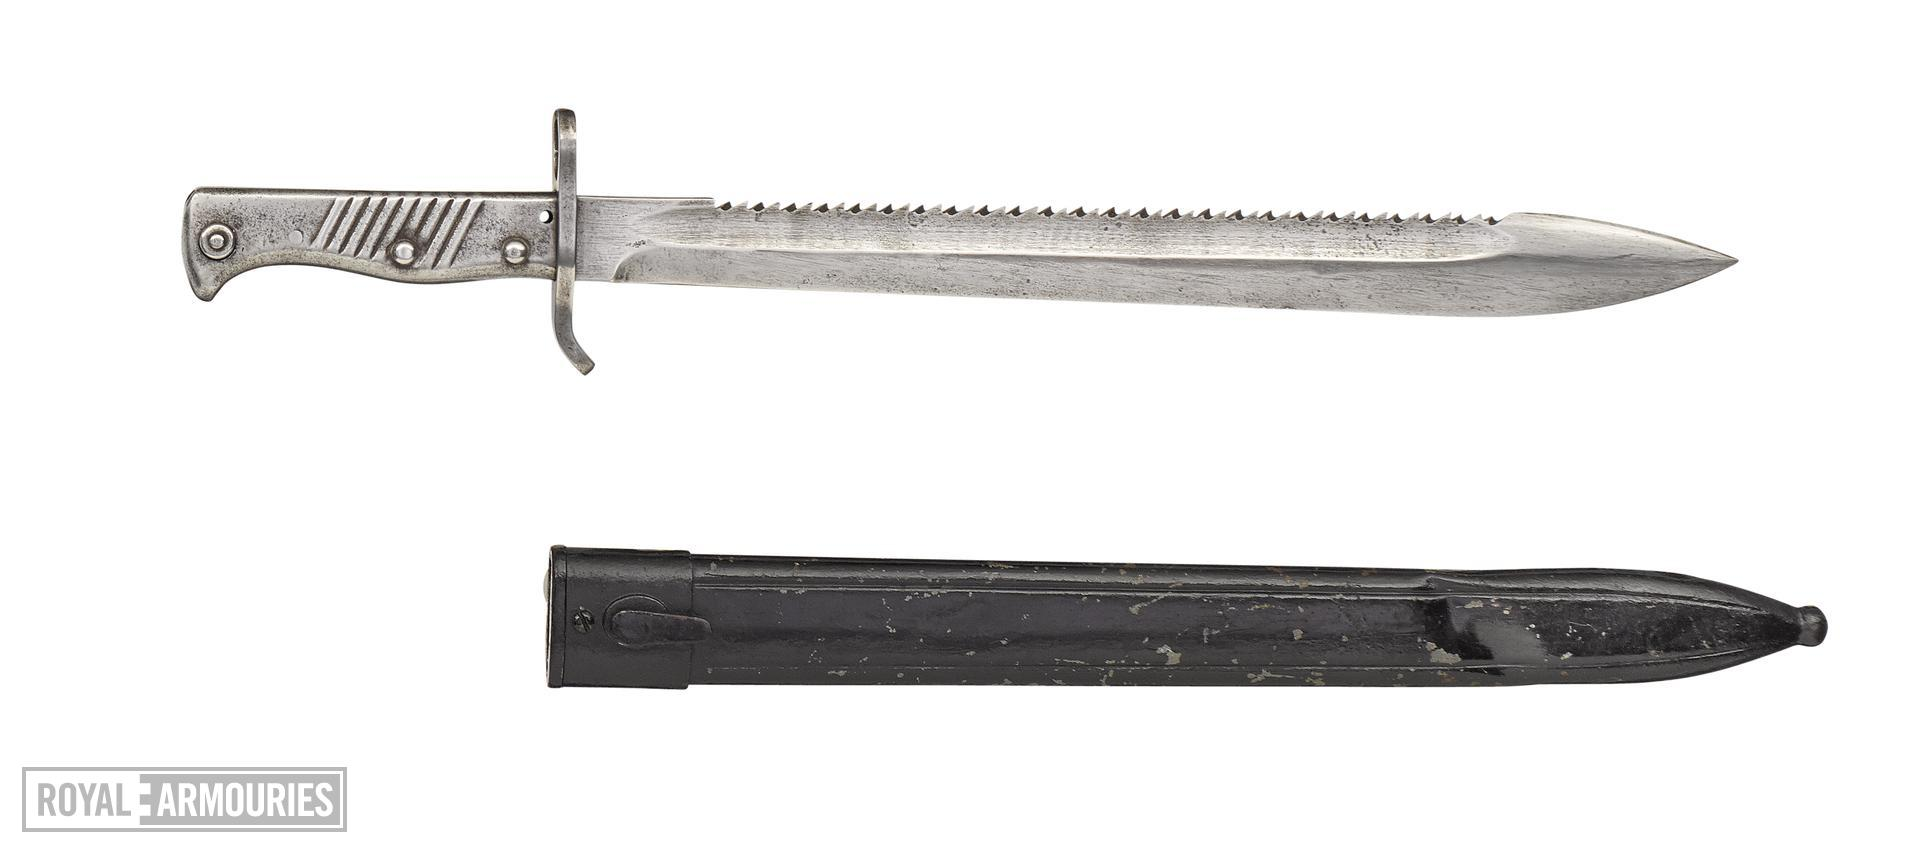 Sawback type Model 1898/05 bayonet and scabbard for the Mauser Model 1898  rifle , Germany, about 1905-1945, with scabbard. Serial No. NVN